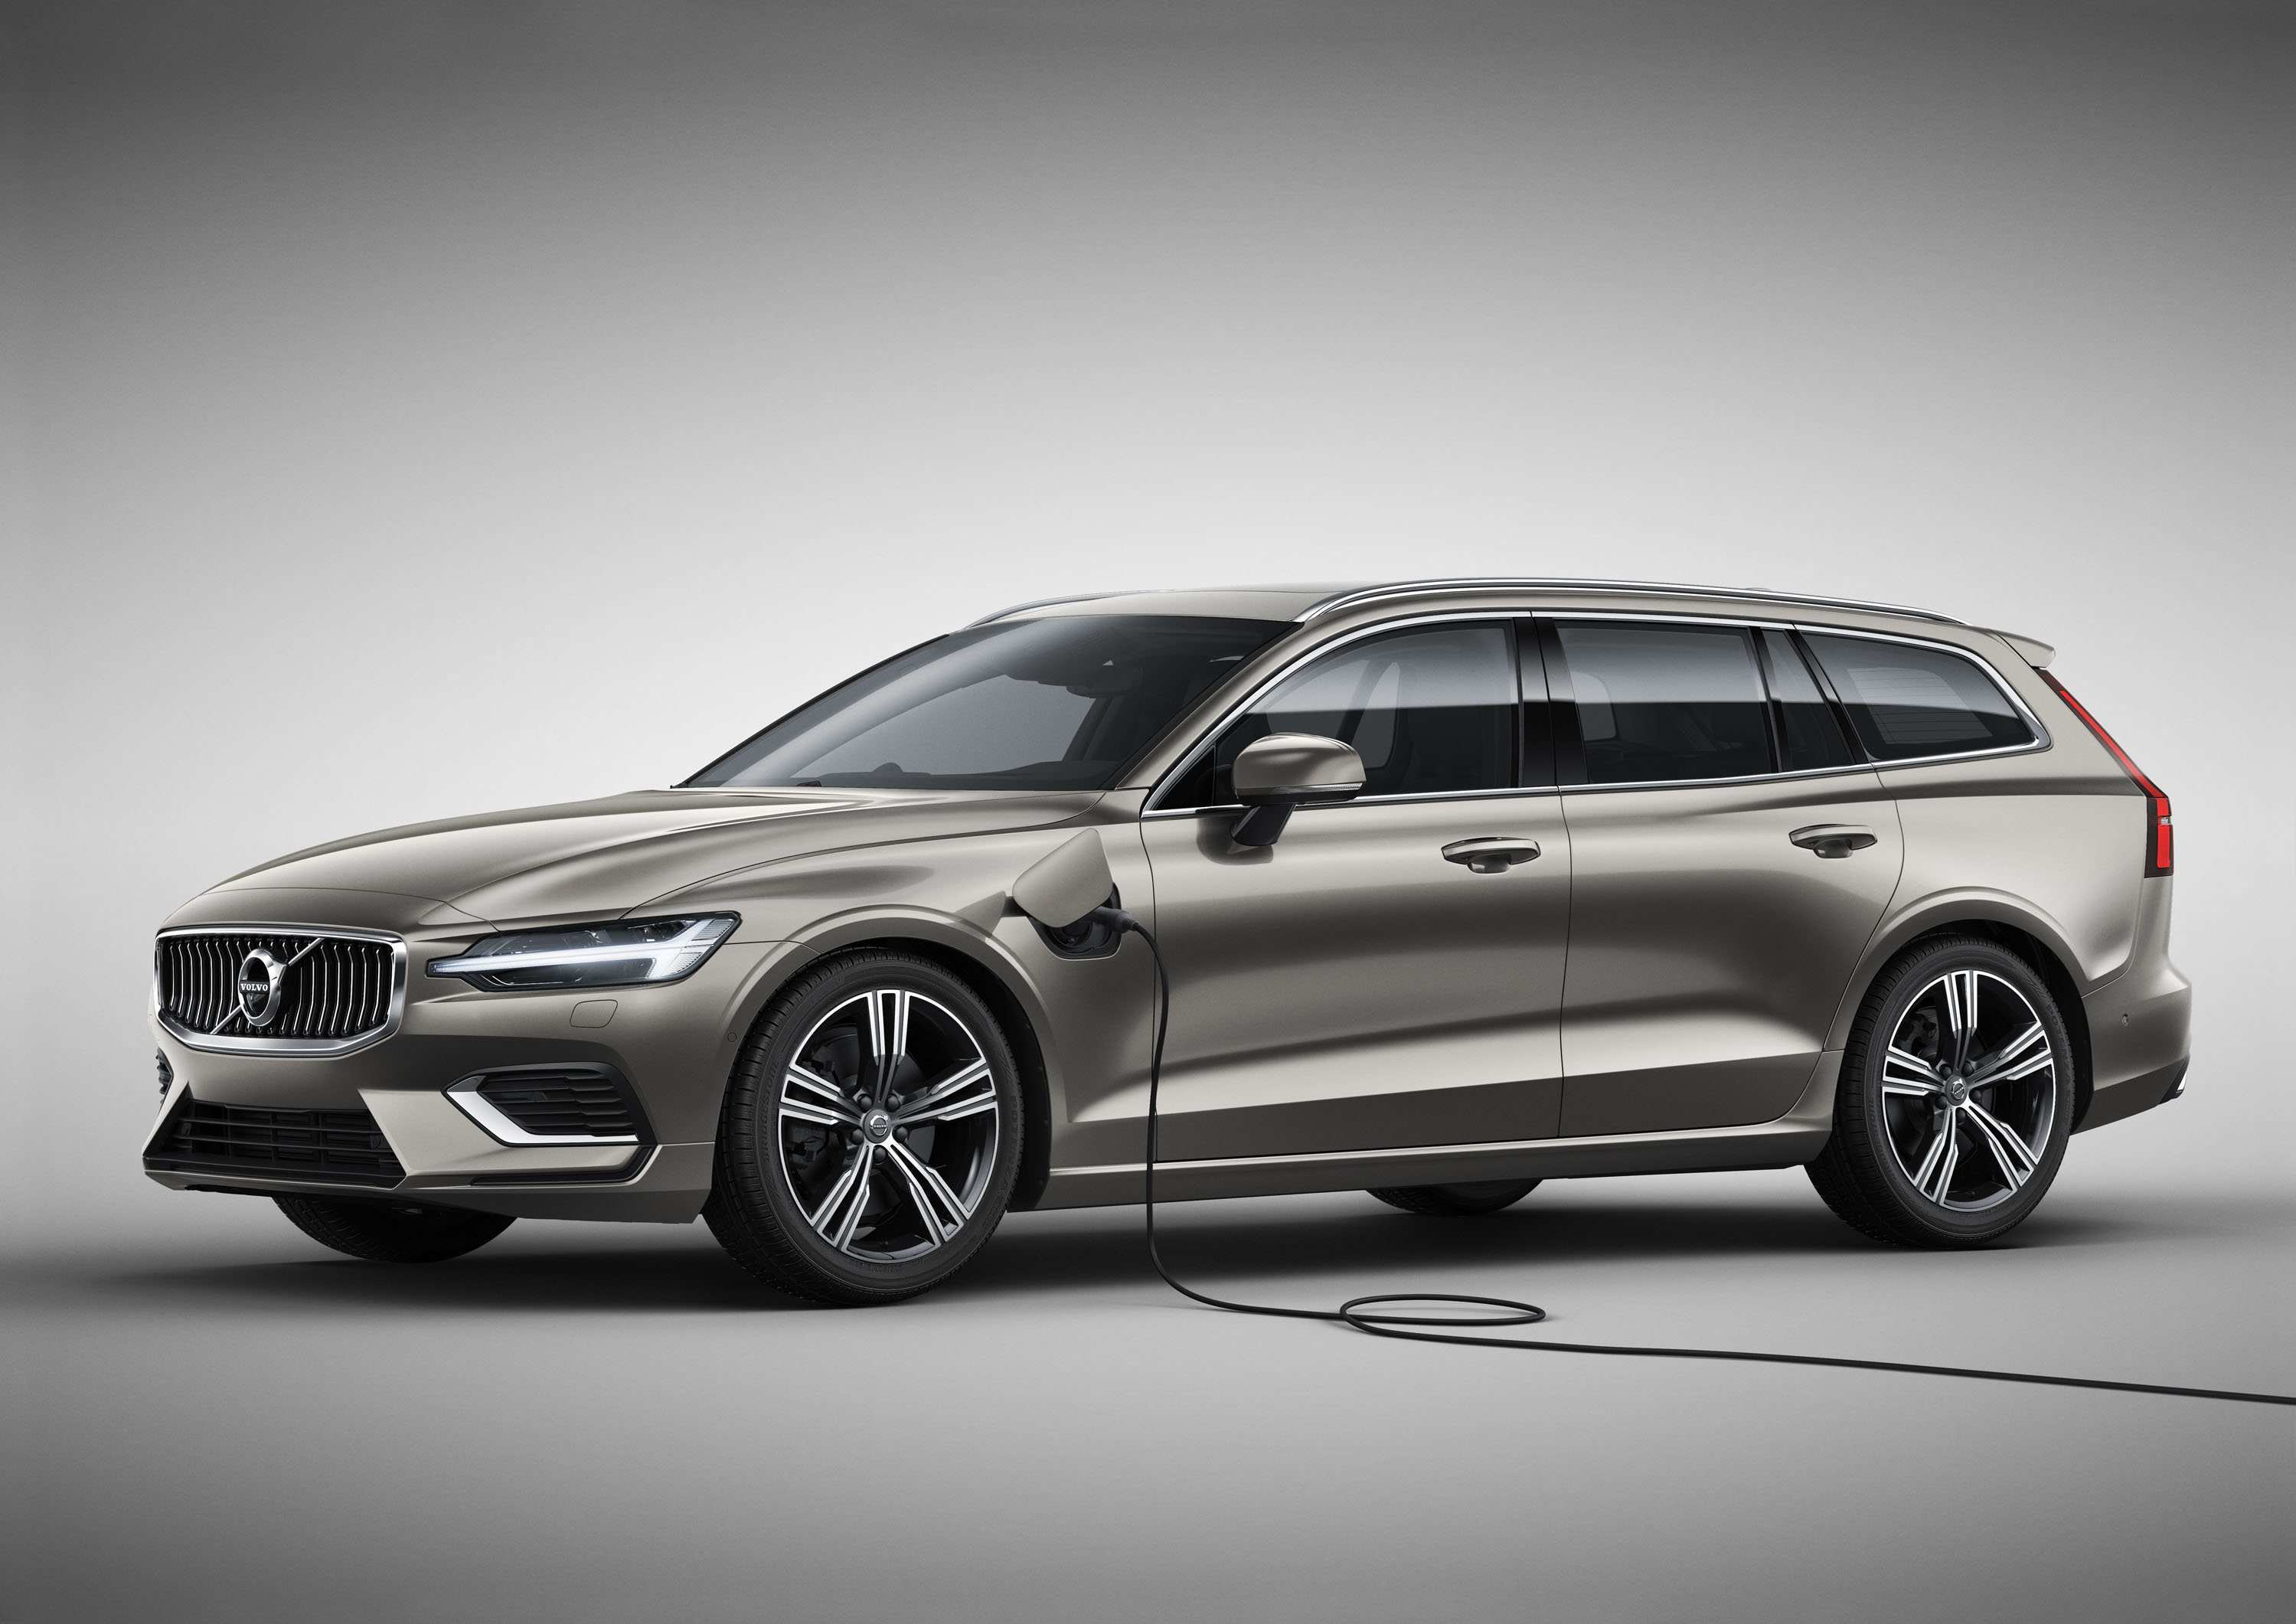 14 Best Review 2019 Volvo Station Wagon Spesification for 2019 Volvo Station Wagon